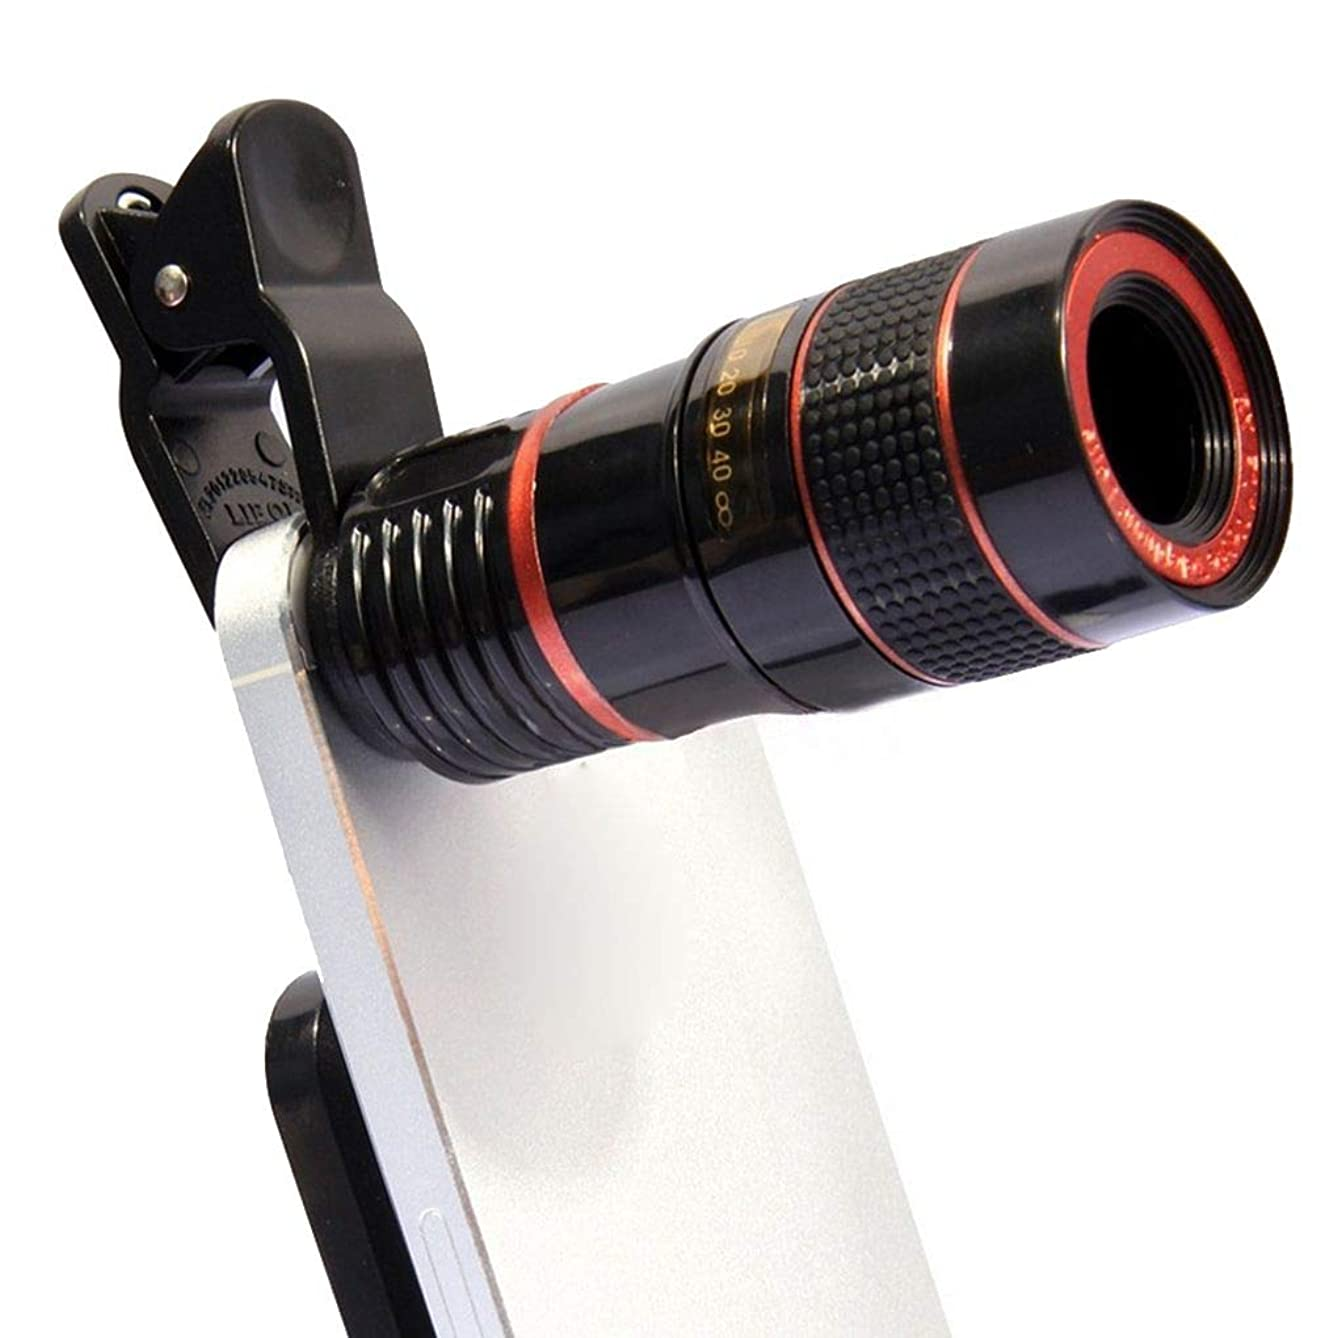 You May 8X Universal Optical Zoom Telescope Camera Lens Clip Mobile Phone Telescope Long Focal Length External Camera